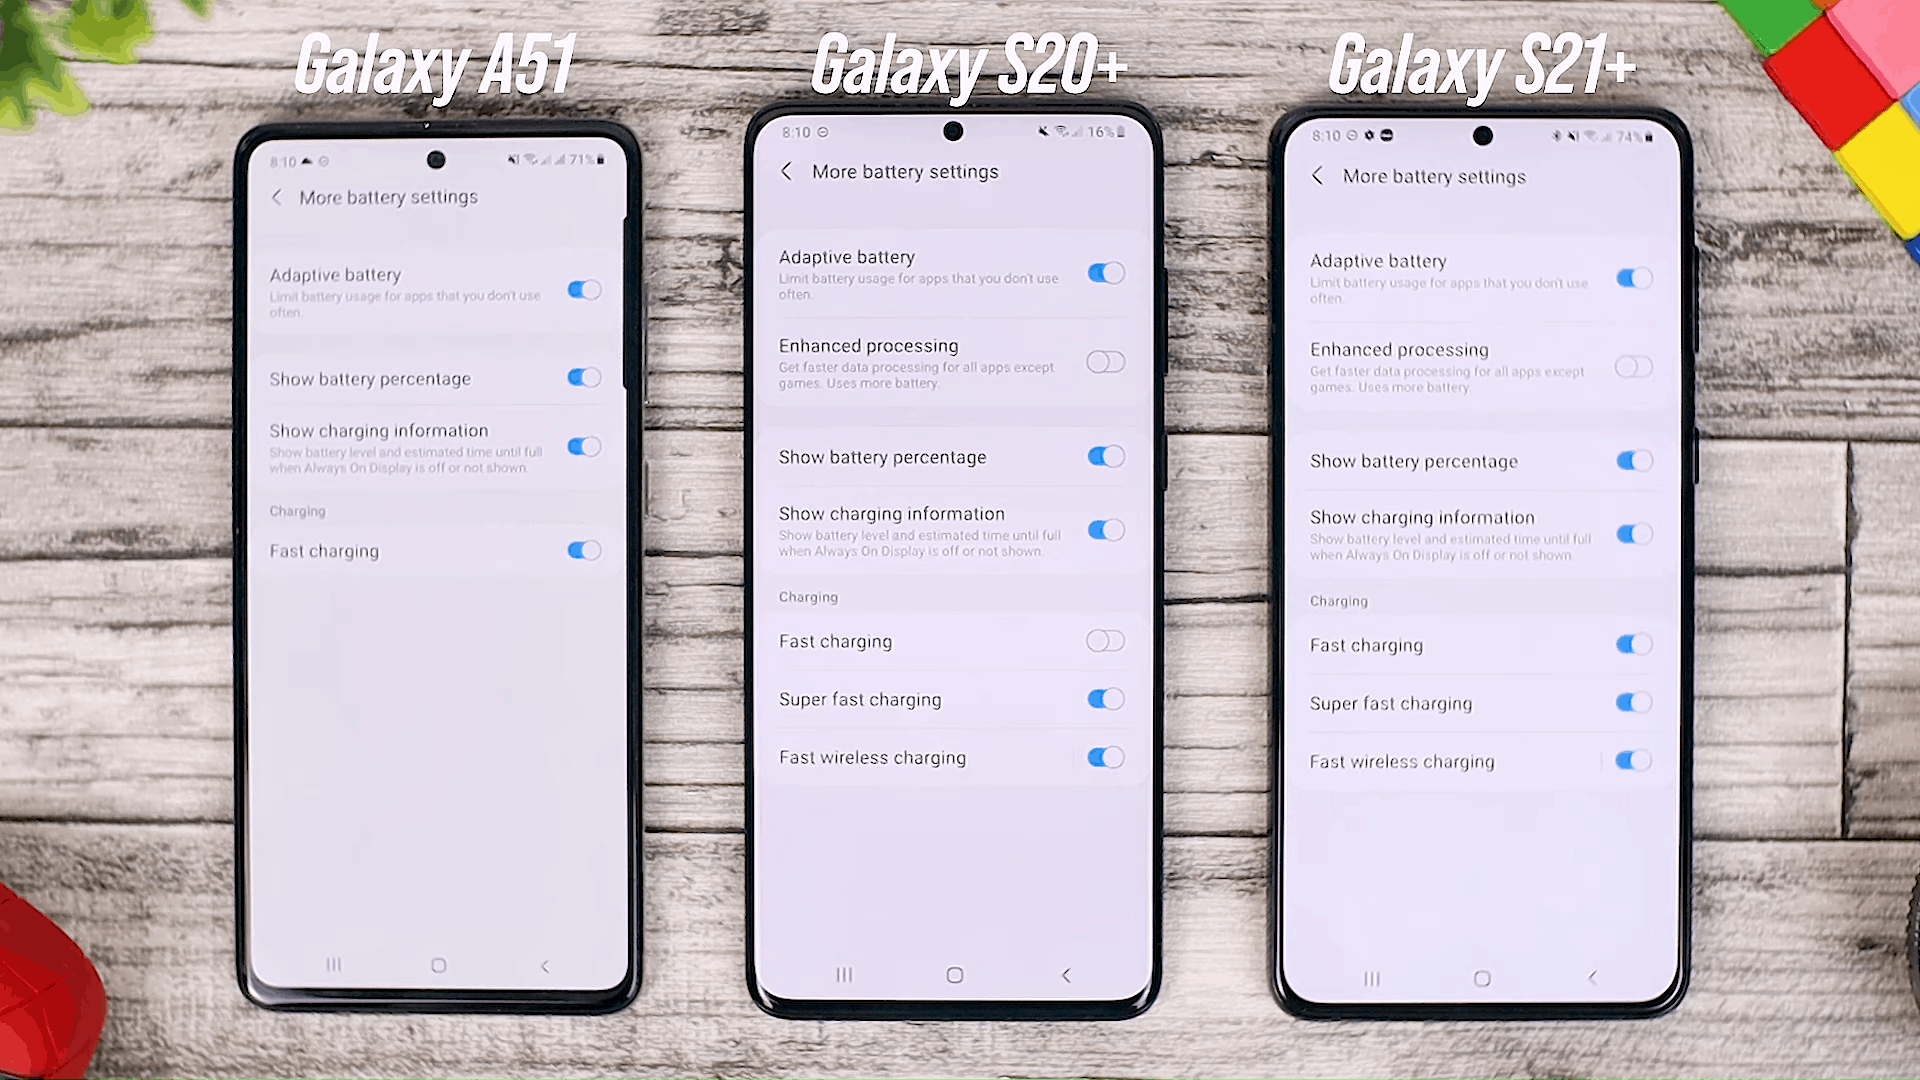 No High-Performance Feature - One UI 3.0 features of Samsung Galaxy A51 and its comparison with the Galaxy S20+ and One UI 3.1 on the Galaxy S21+